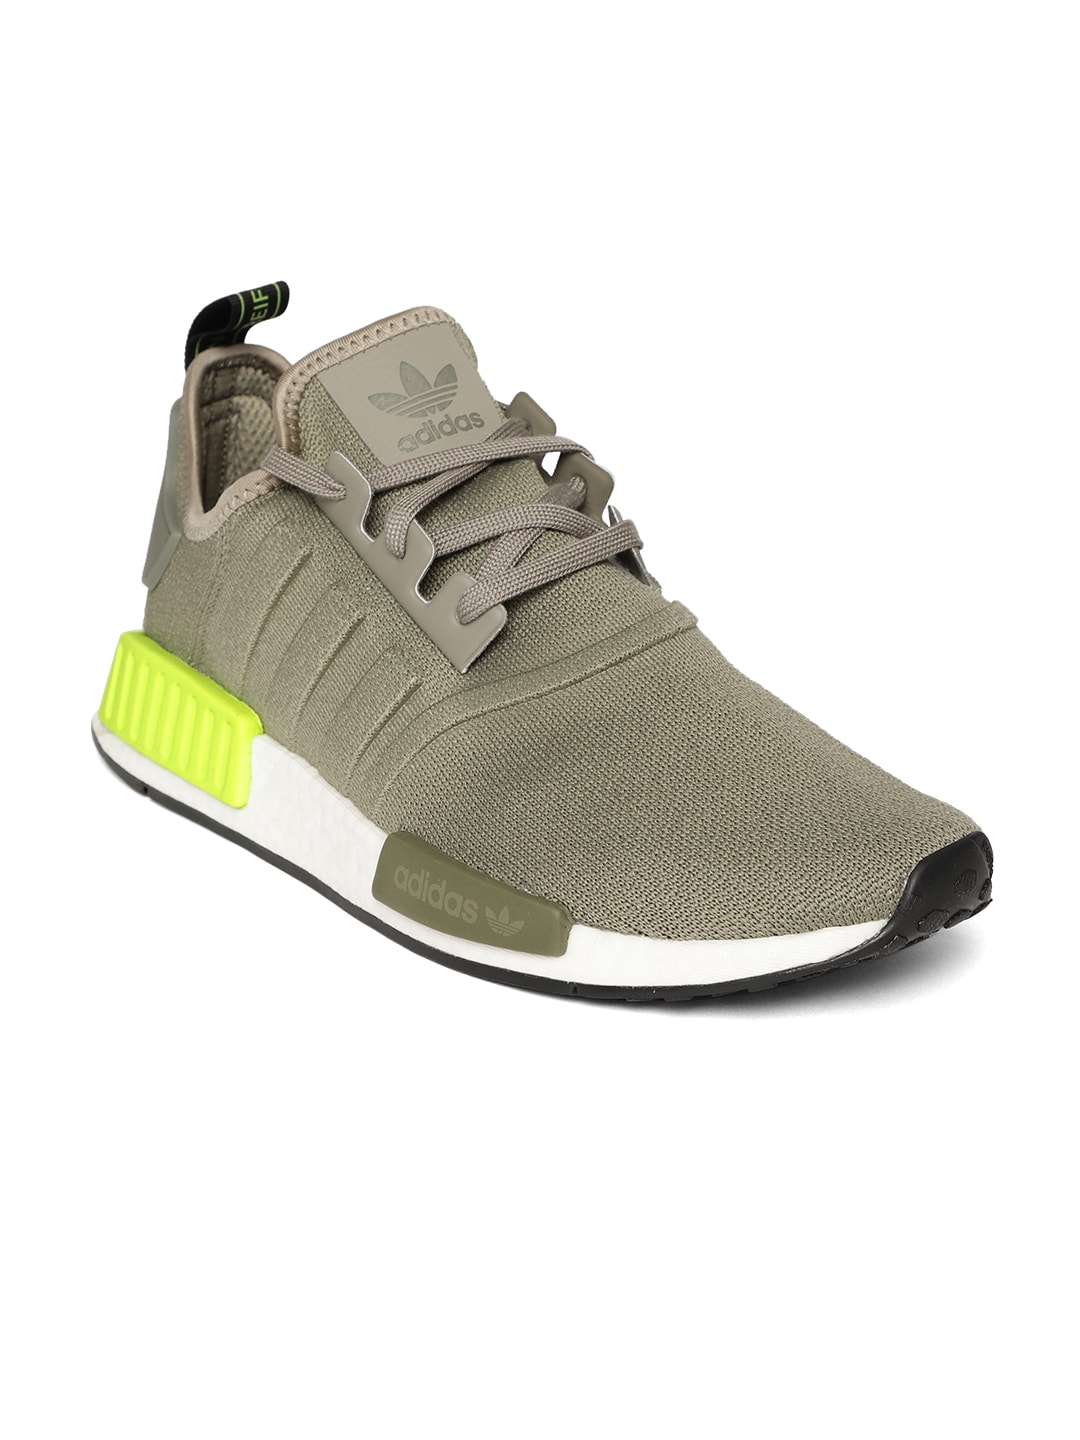 99ff1fdb3aec3 Olive Green Casual Shoes - Buy Olive Green Casual Shoes online in India